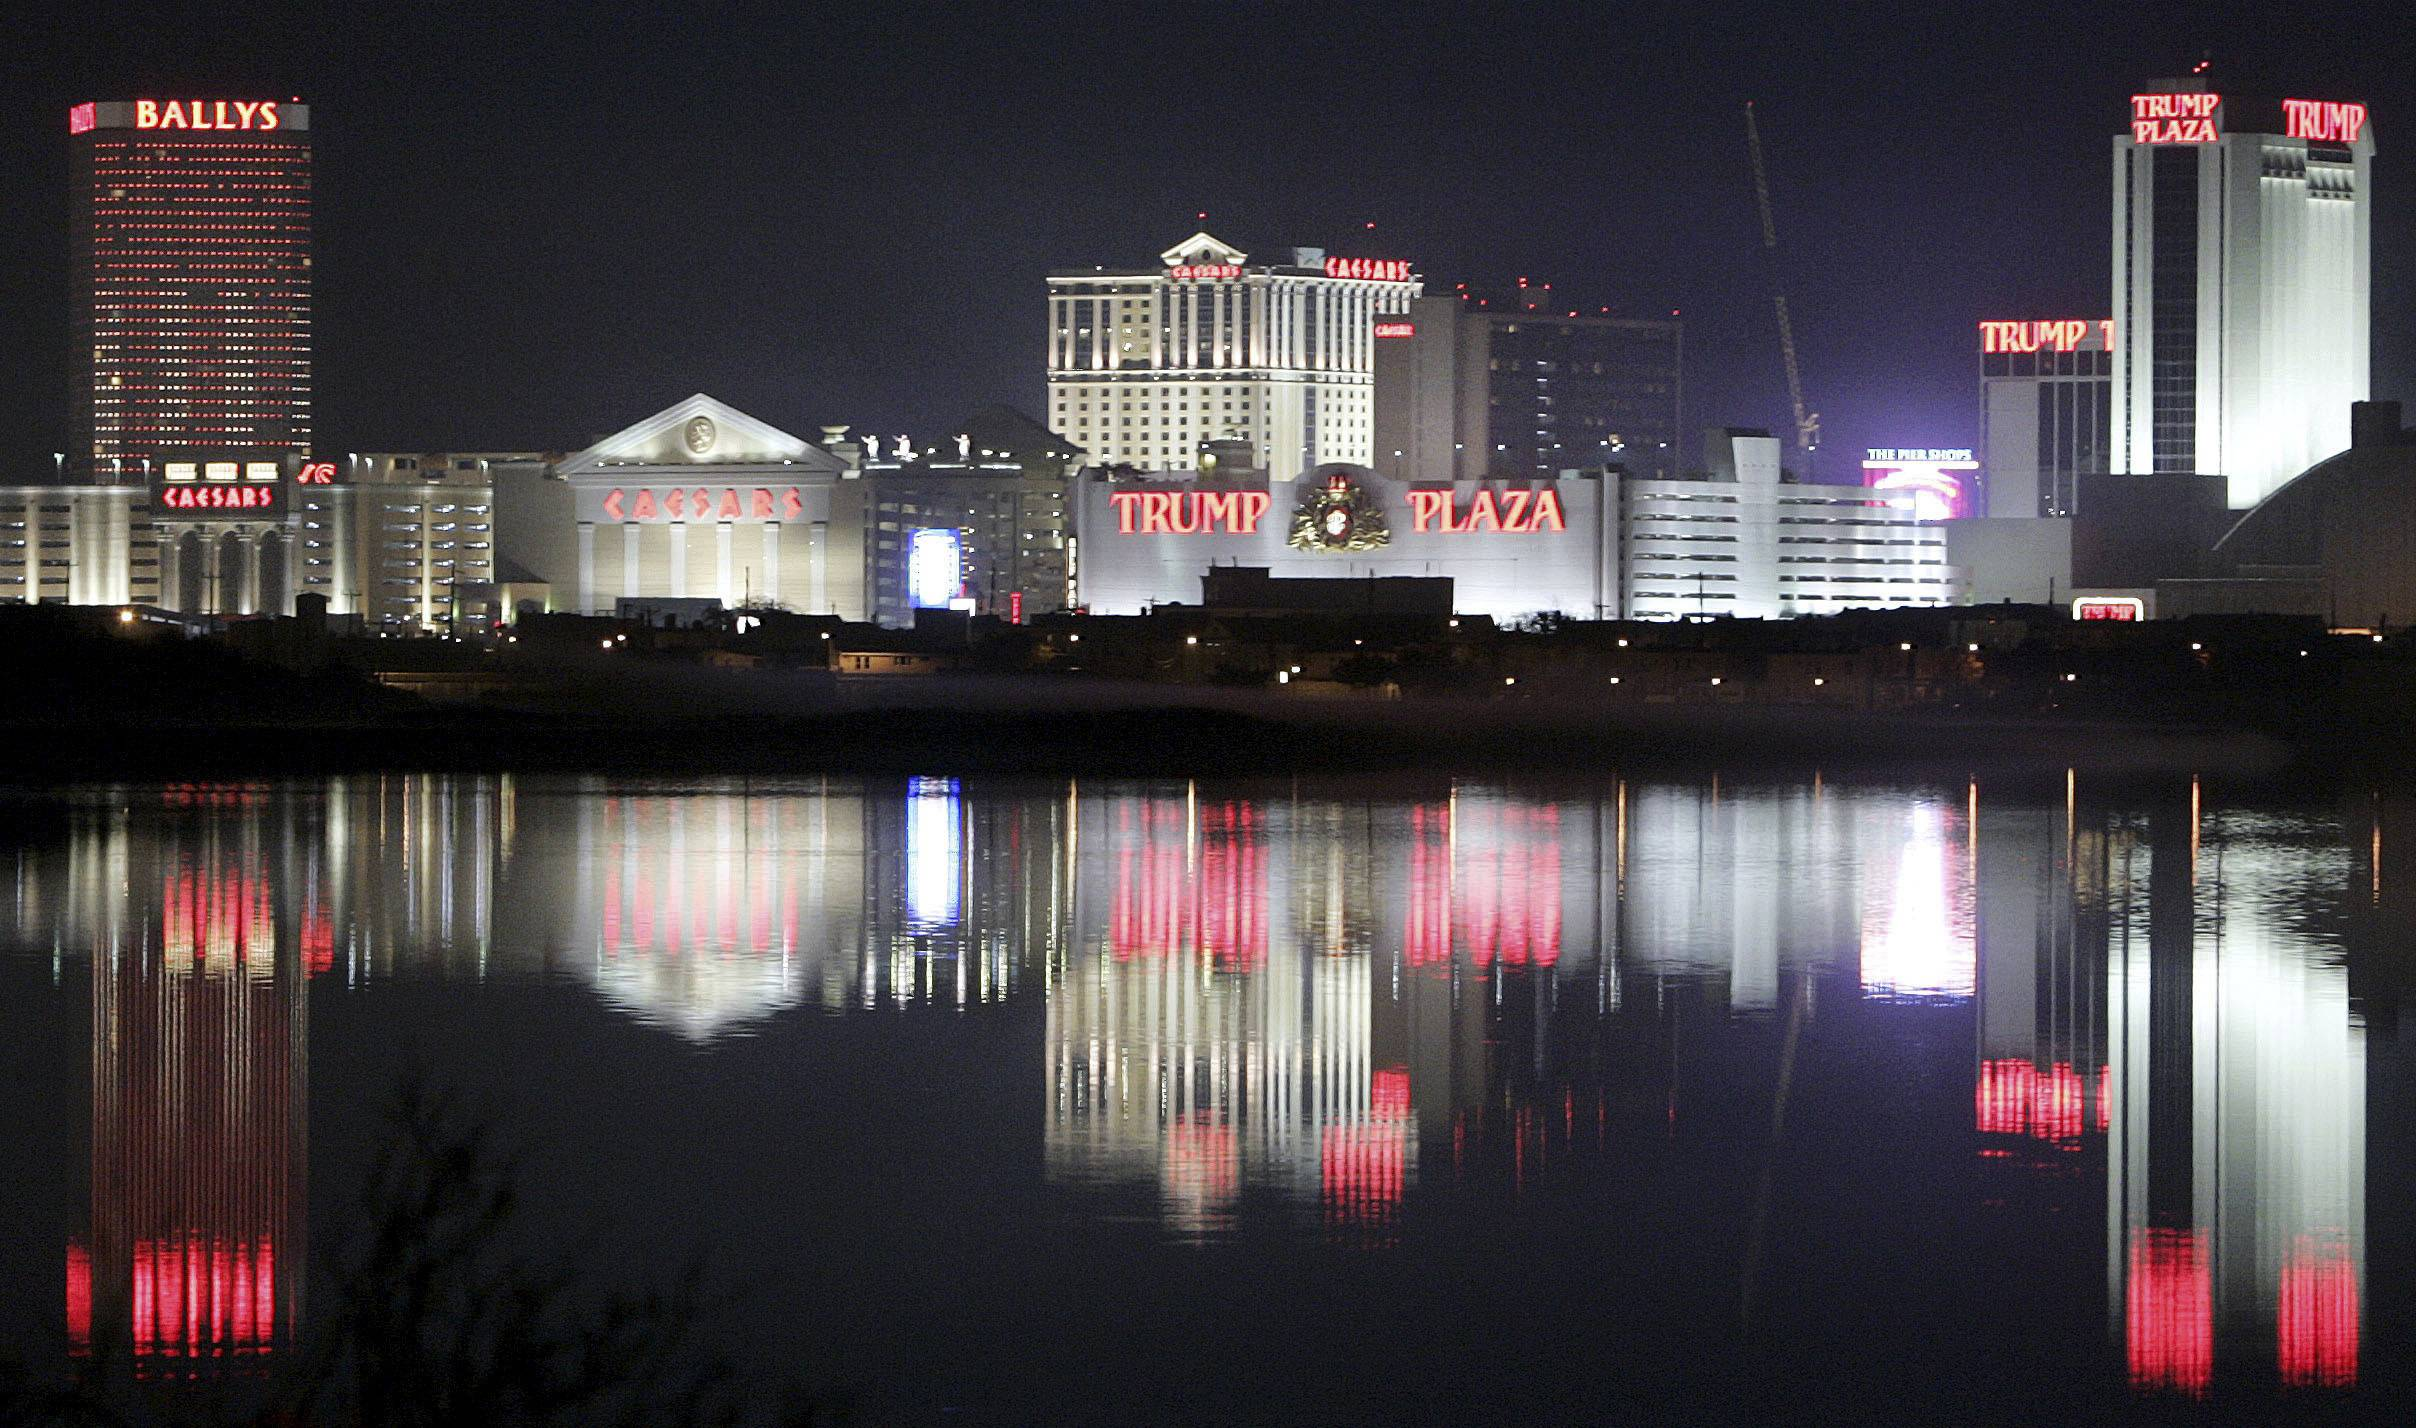 The rapid disintegration of Atlantic City's casino market might be an early indicator of what could happen in other parts of the country that have too many casinos and not enough gamblers.